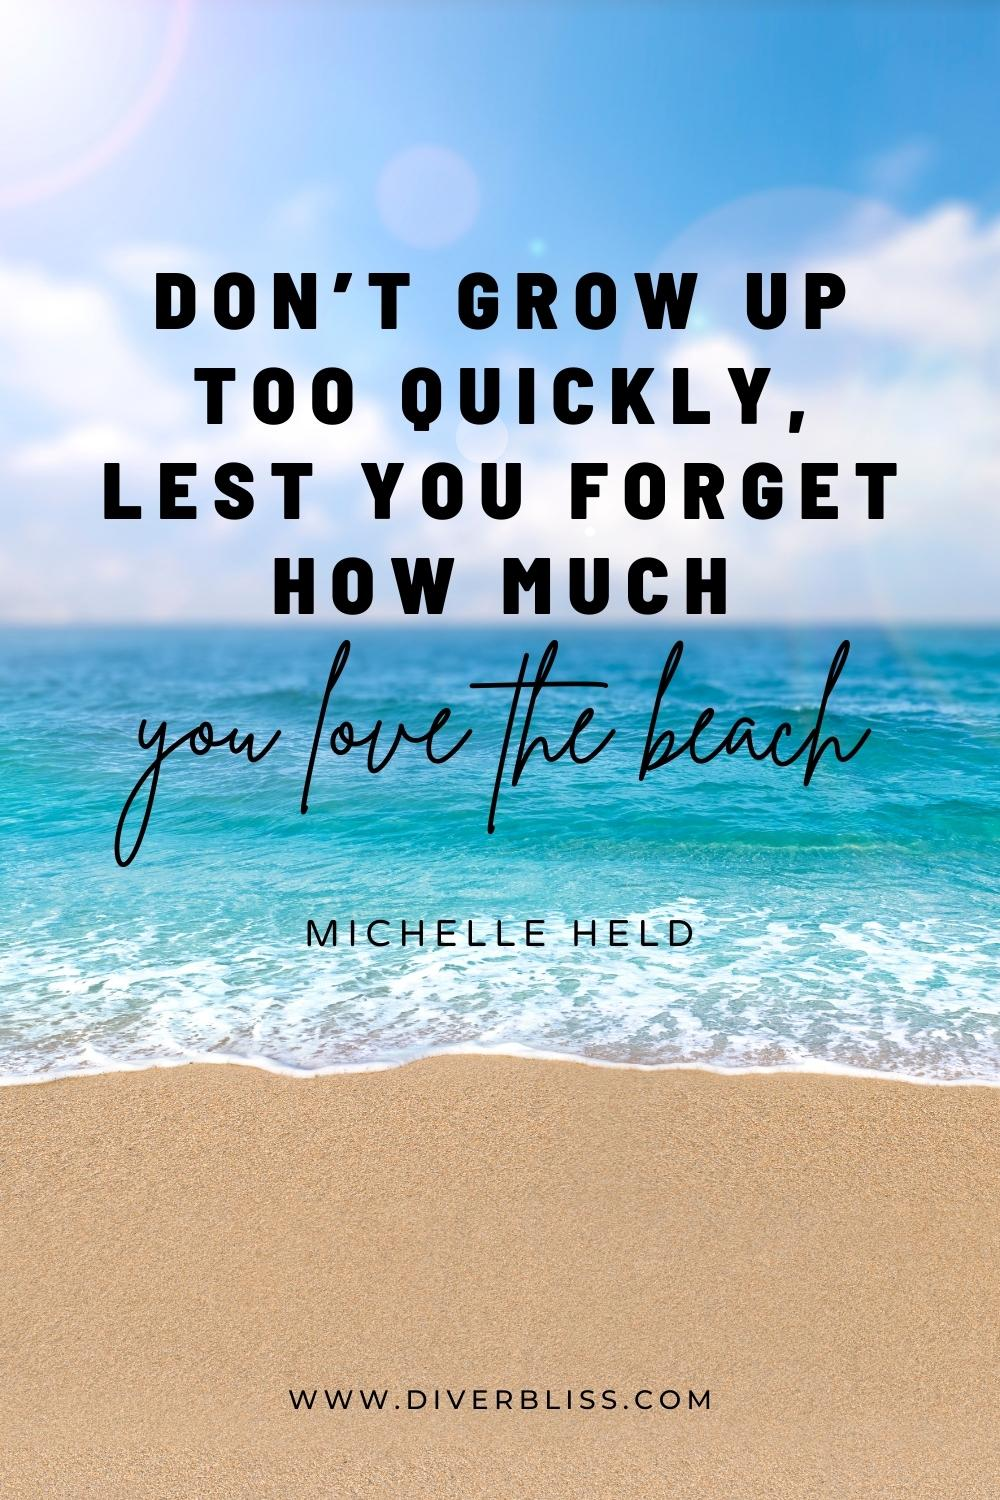 """""""Don't grow up too quickly, lest you forget how much you love the beach."""" —Michelle Held"""